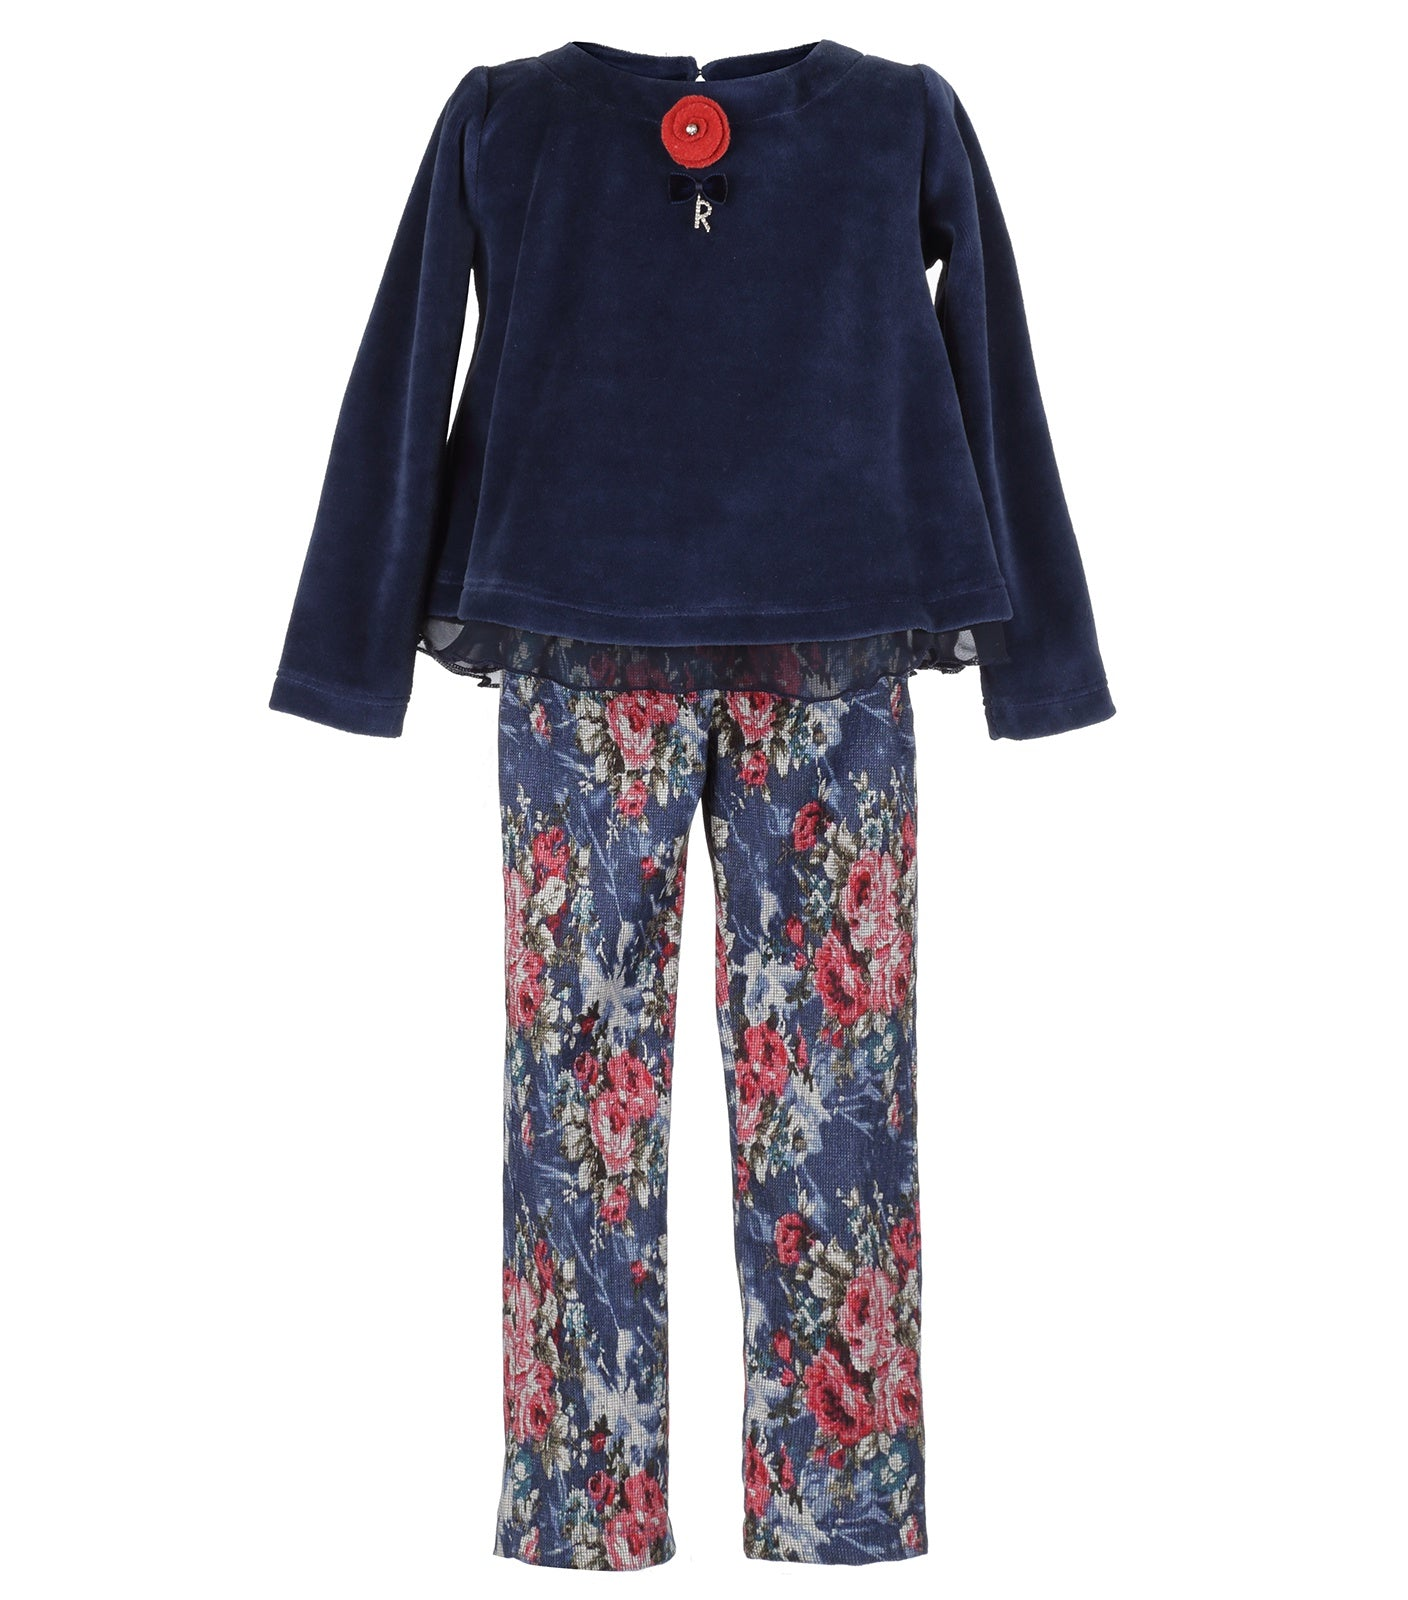 Floral Pants in blue and red